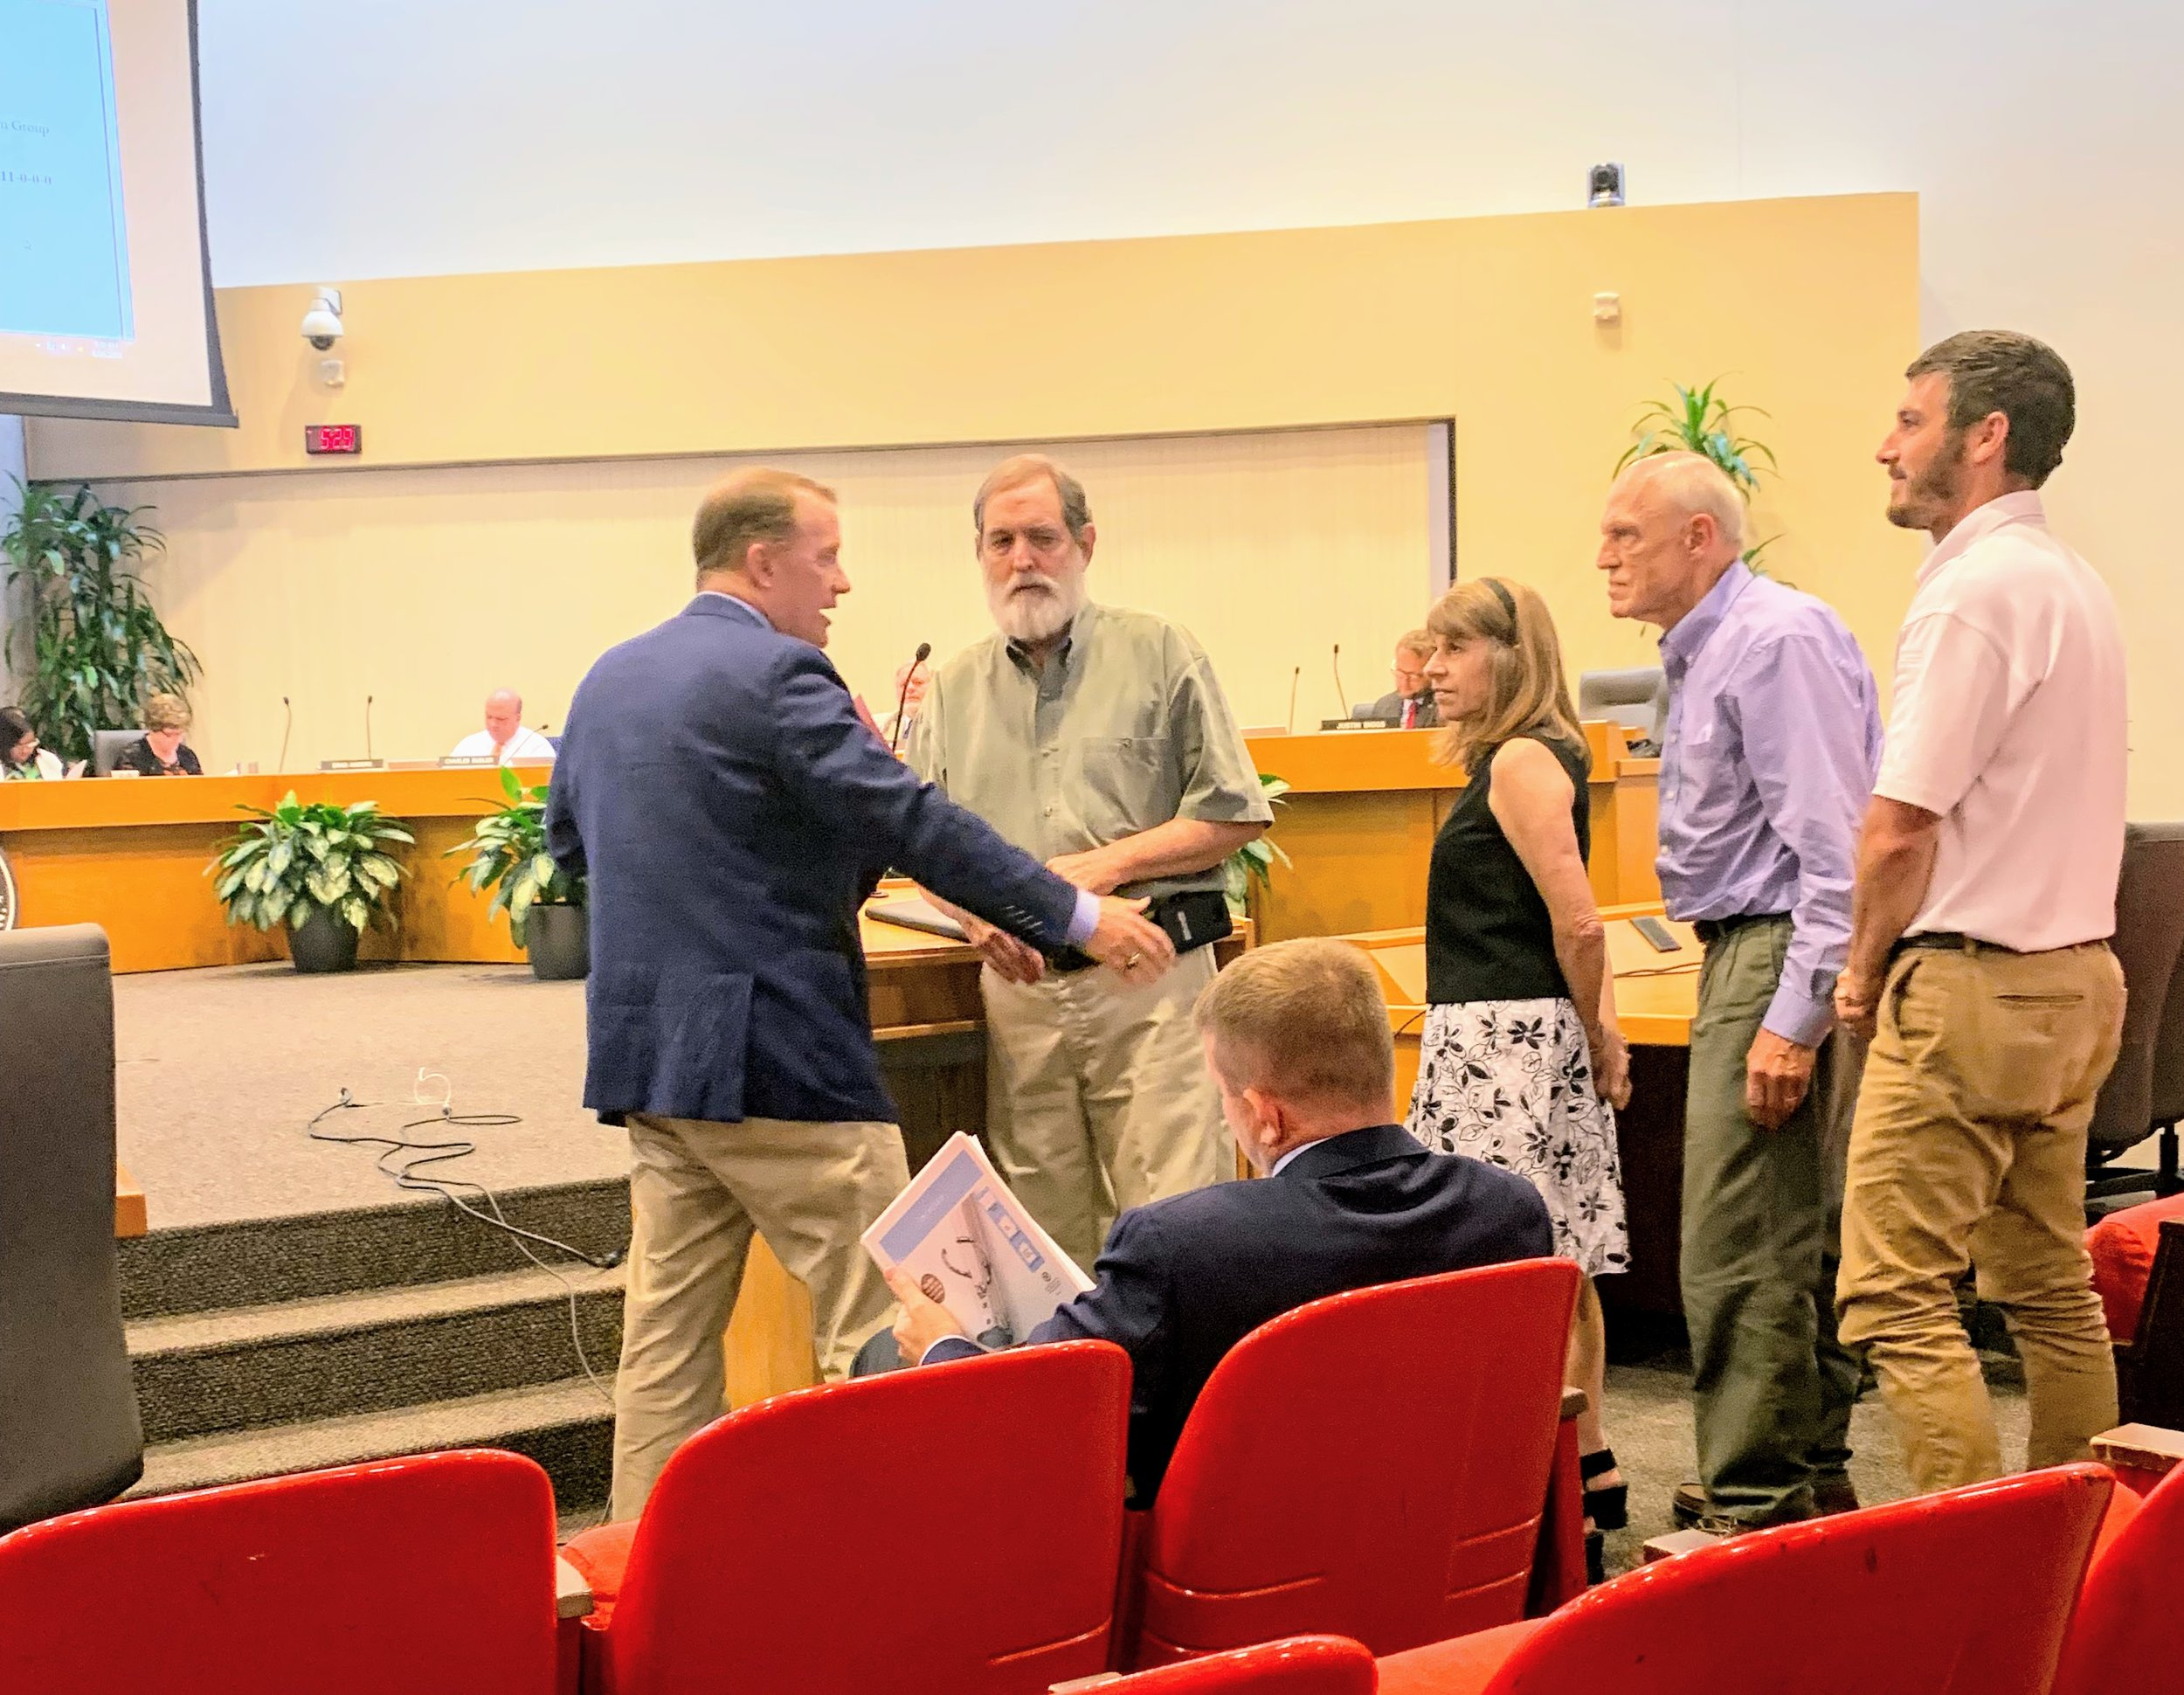 August 26, 2019 at County Commission